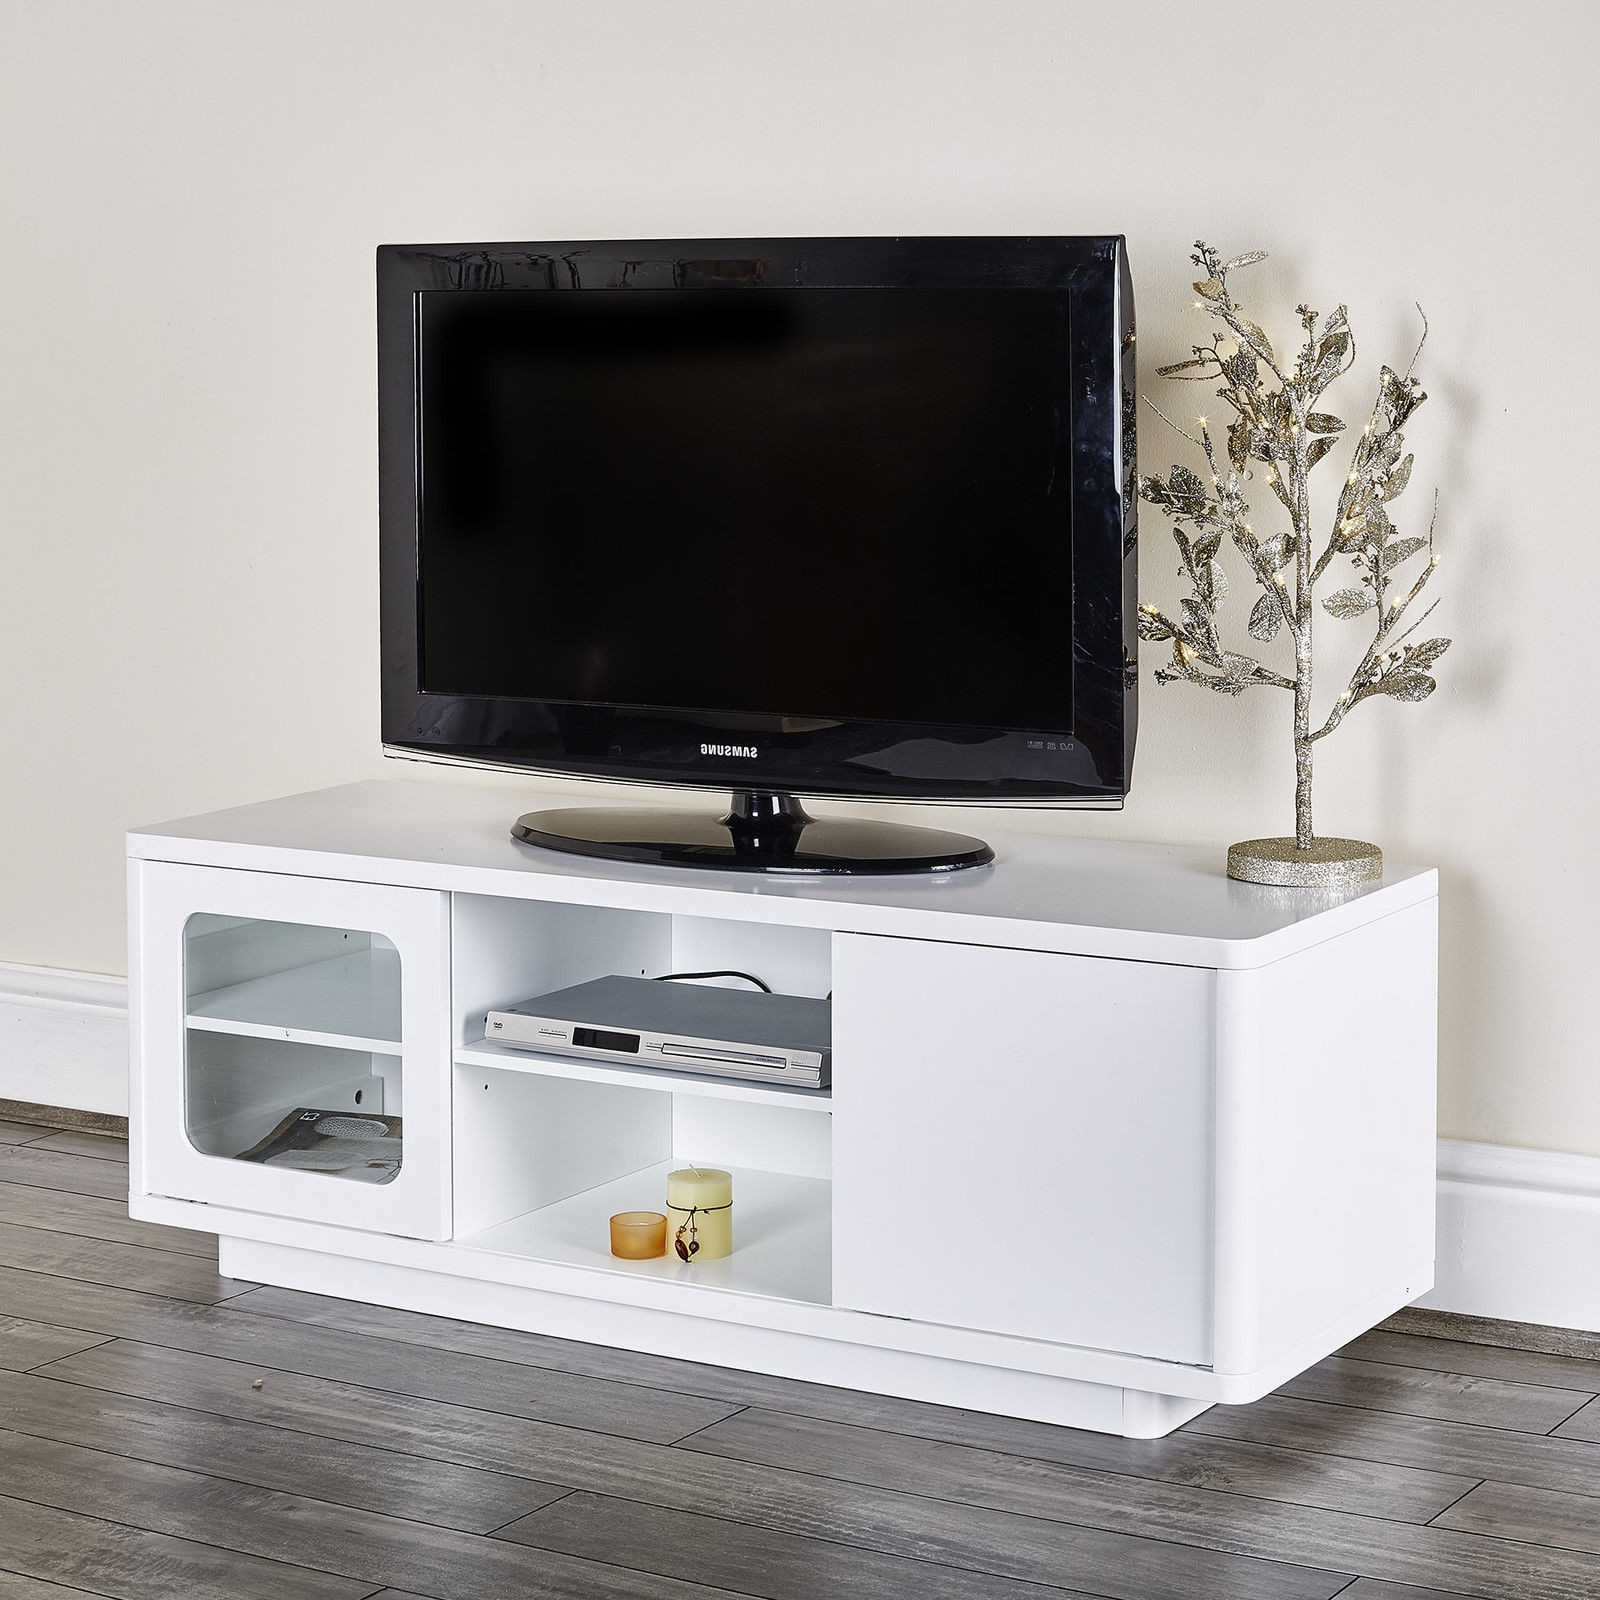 Famous 36 Inch Wide Tv Stand Modern With Mount Entertainment Center Wall In White And Black Tv Stands (View 7 of 20)